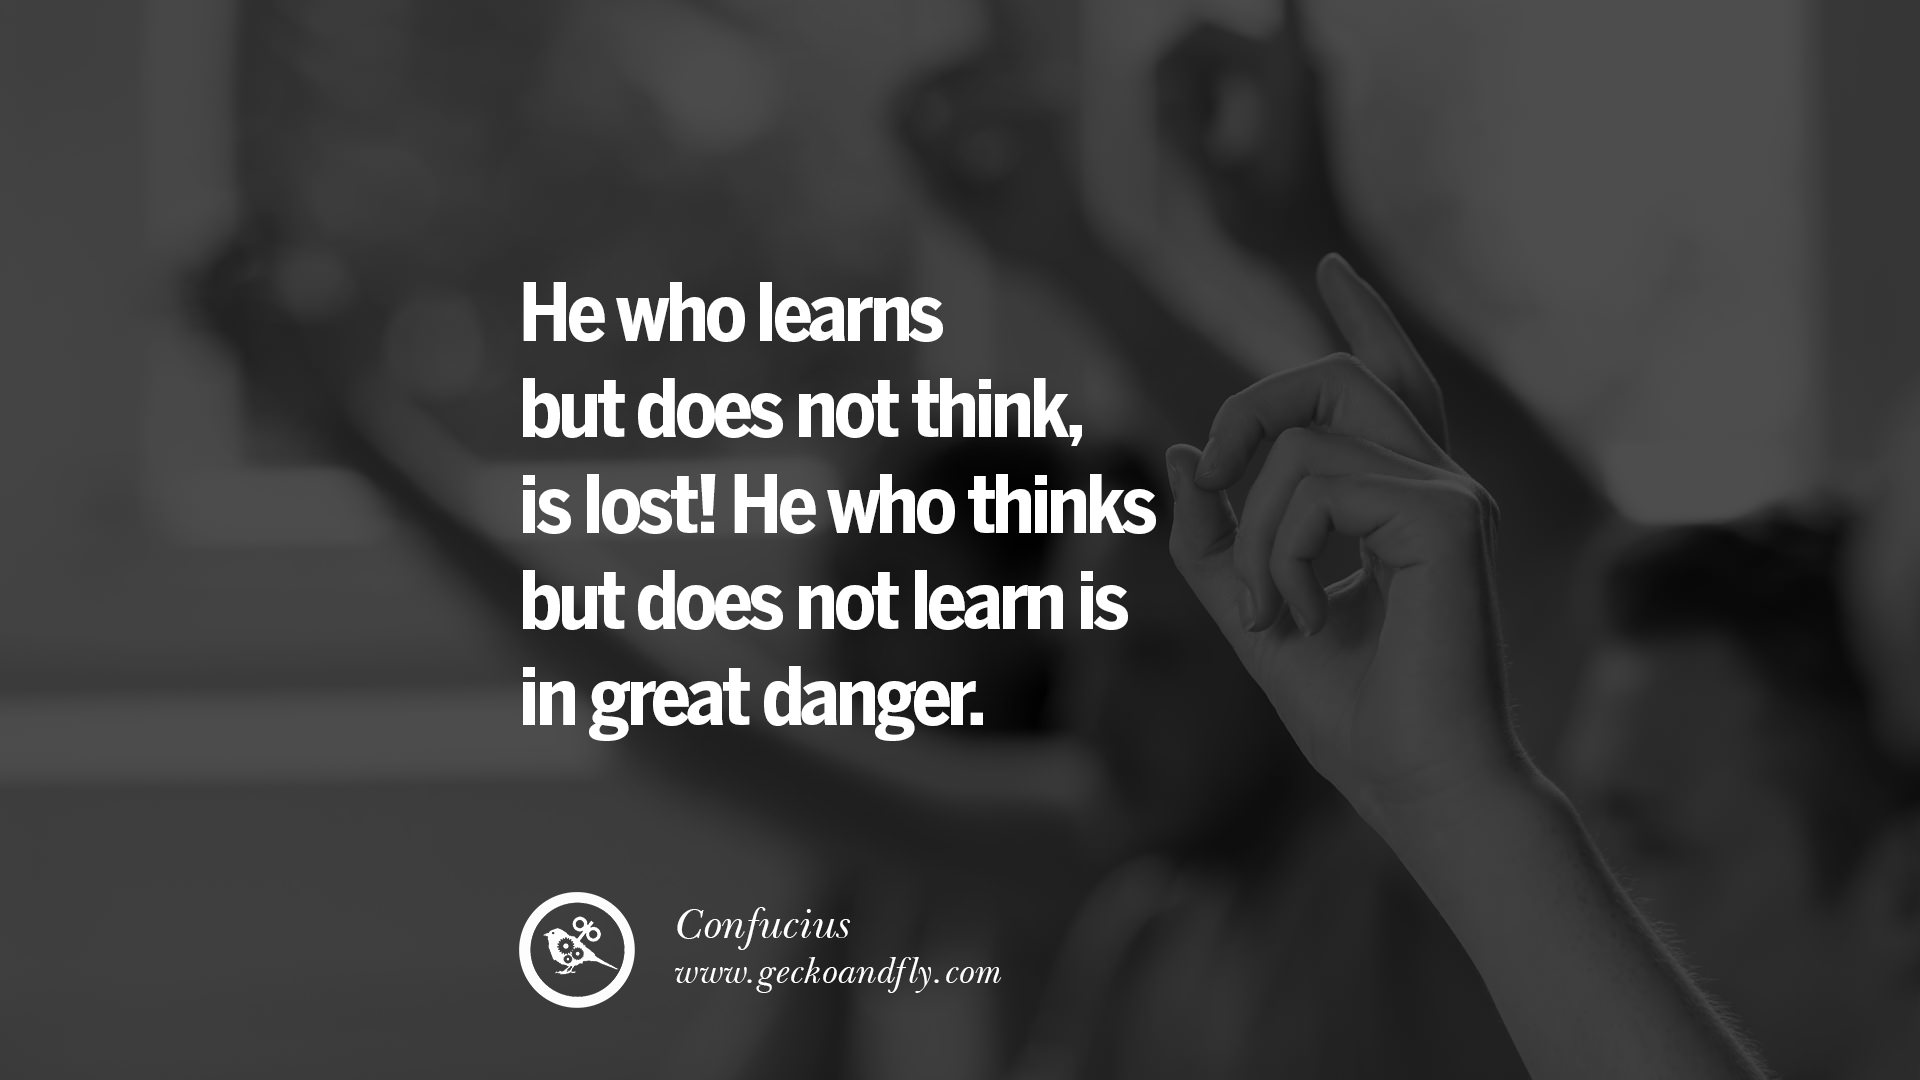 He who learns but does not think is lost he who thinks but does not learn is in great danger